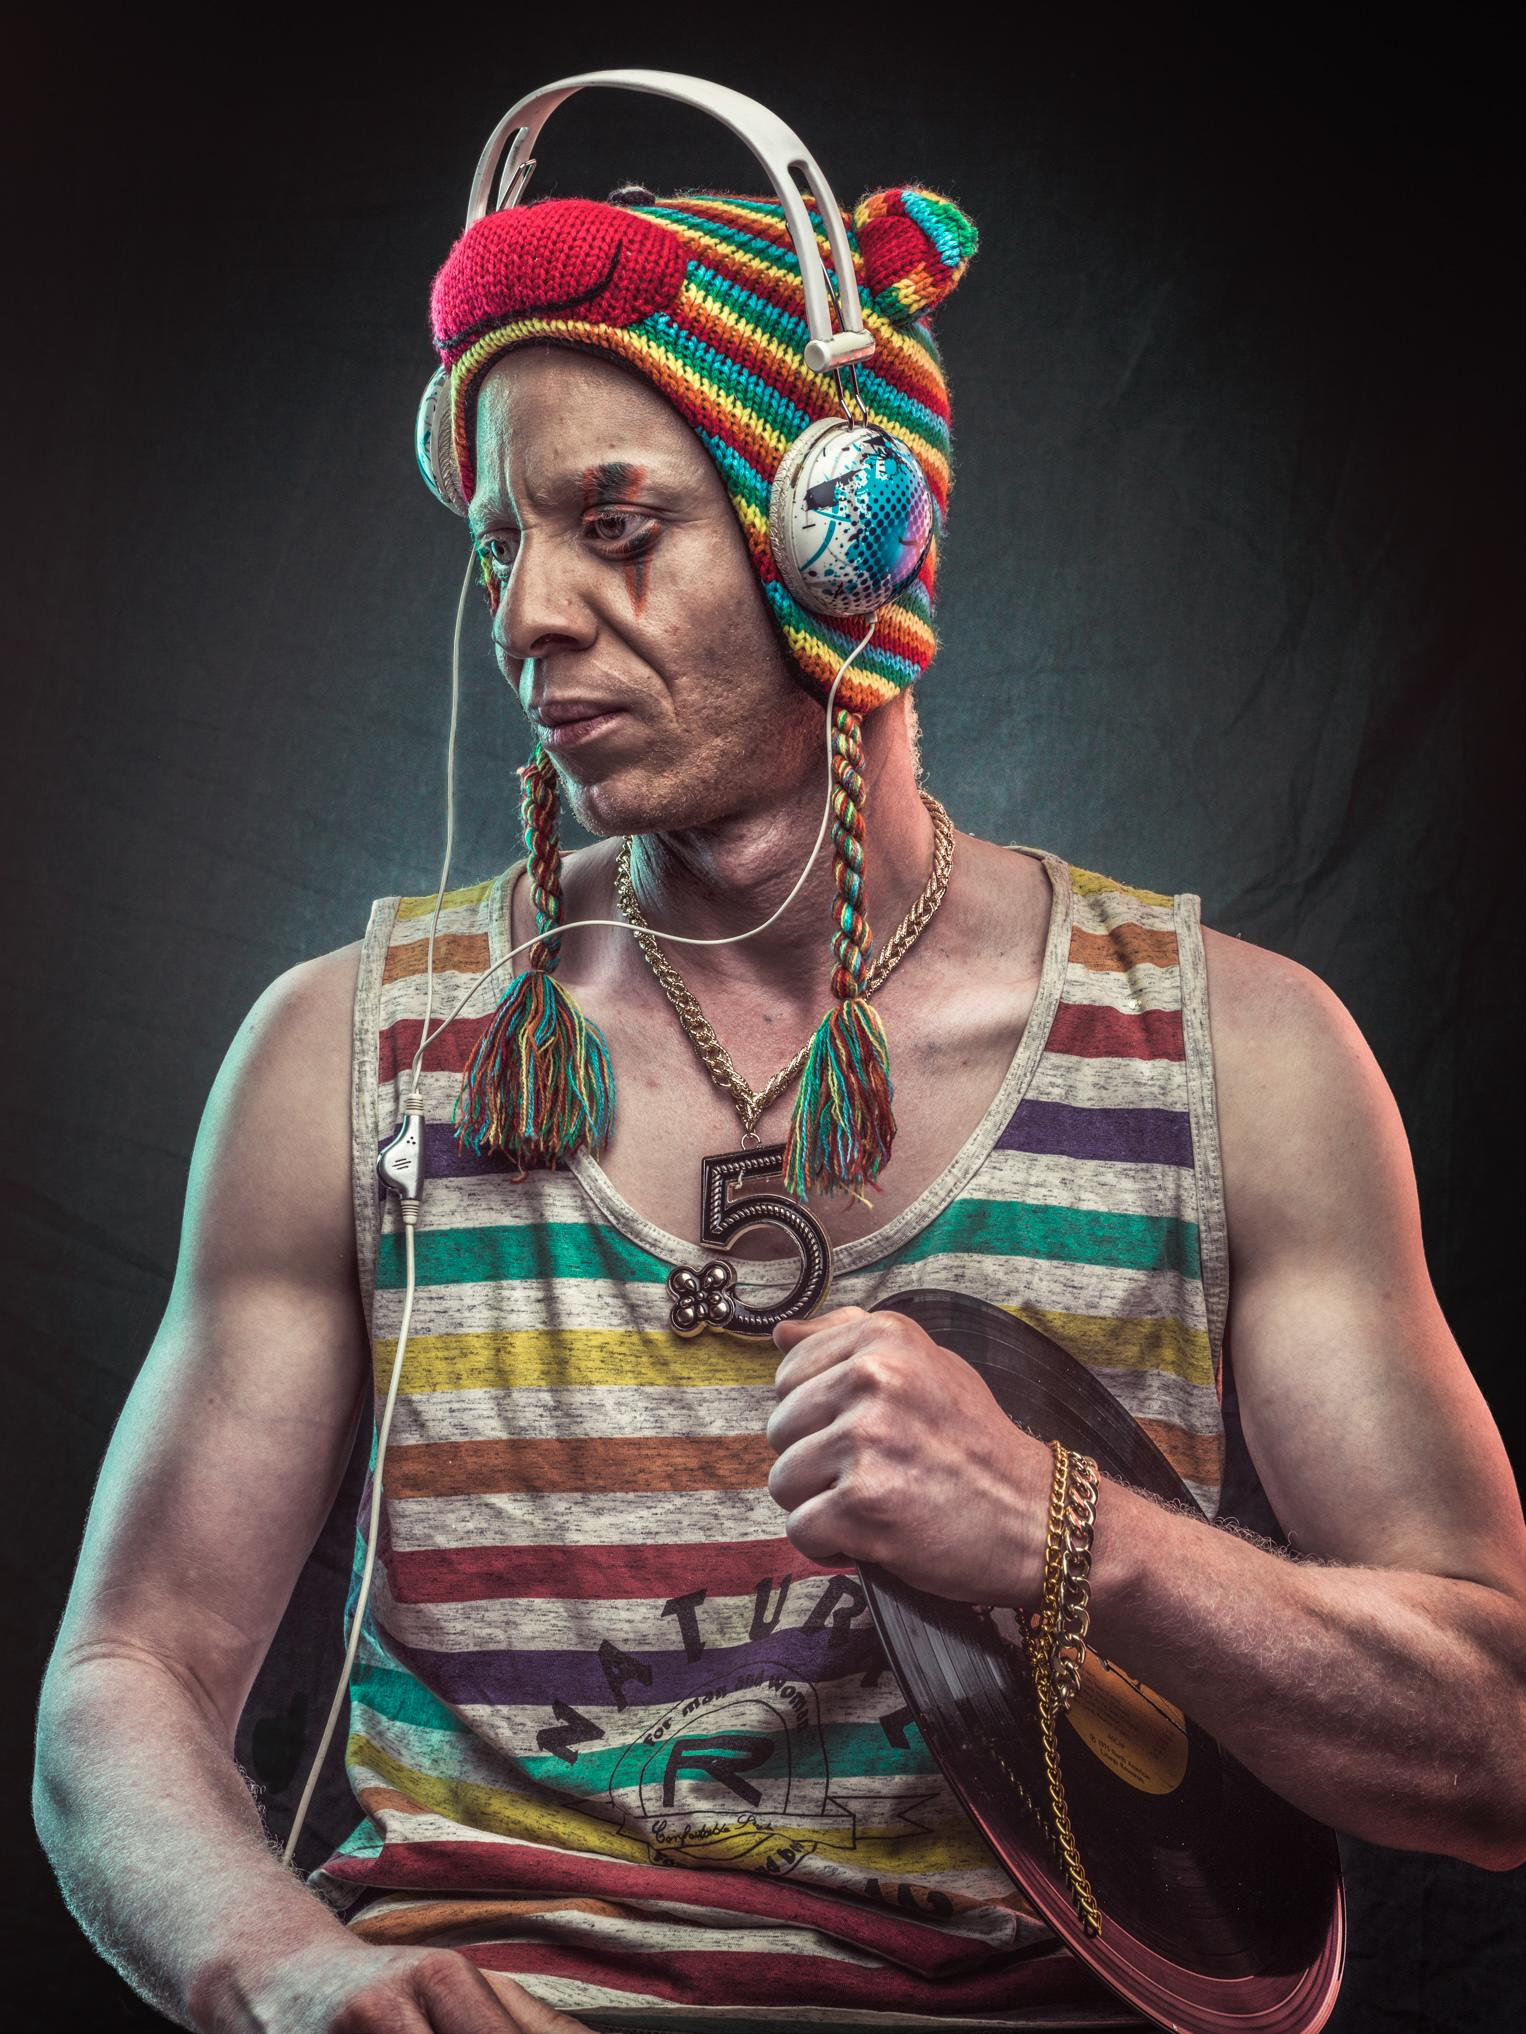 From the 'Melanin Zero' project, which captures the dream and aspiration of people living with albinism.